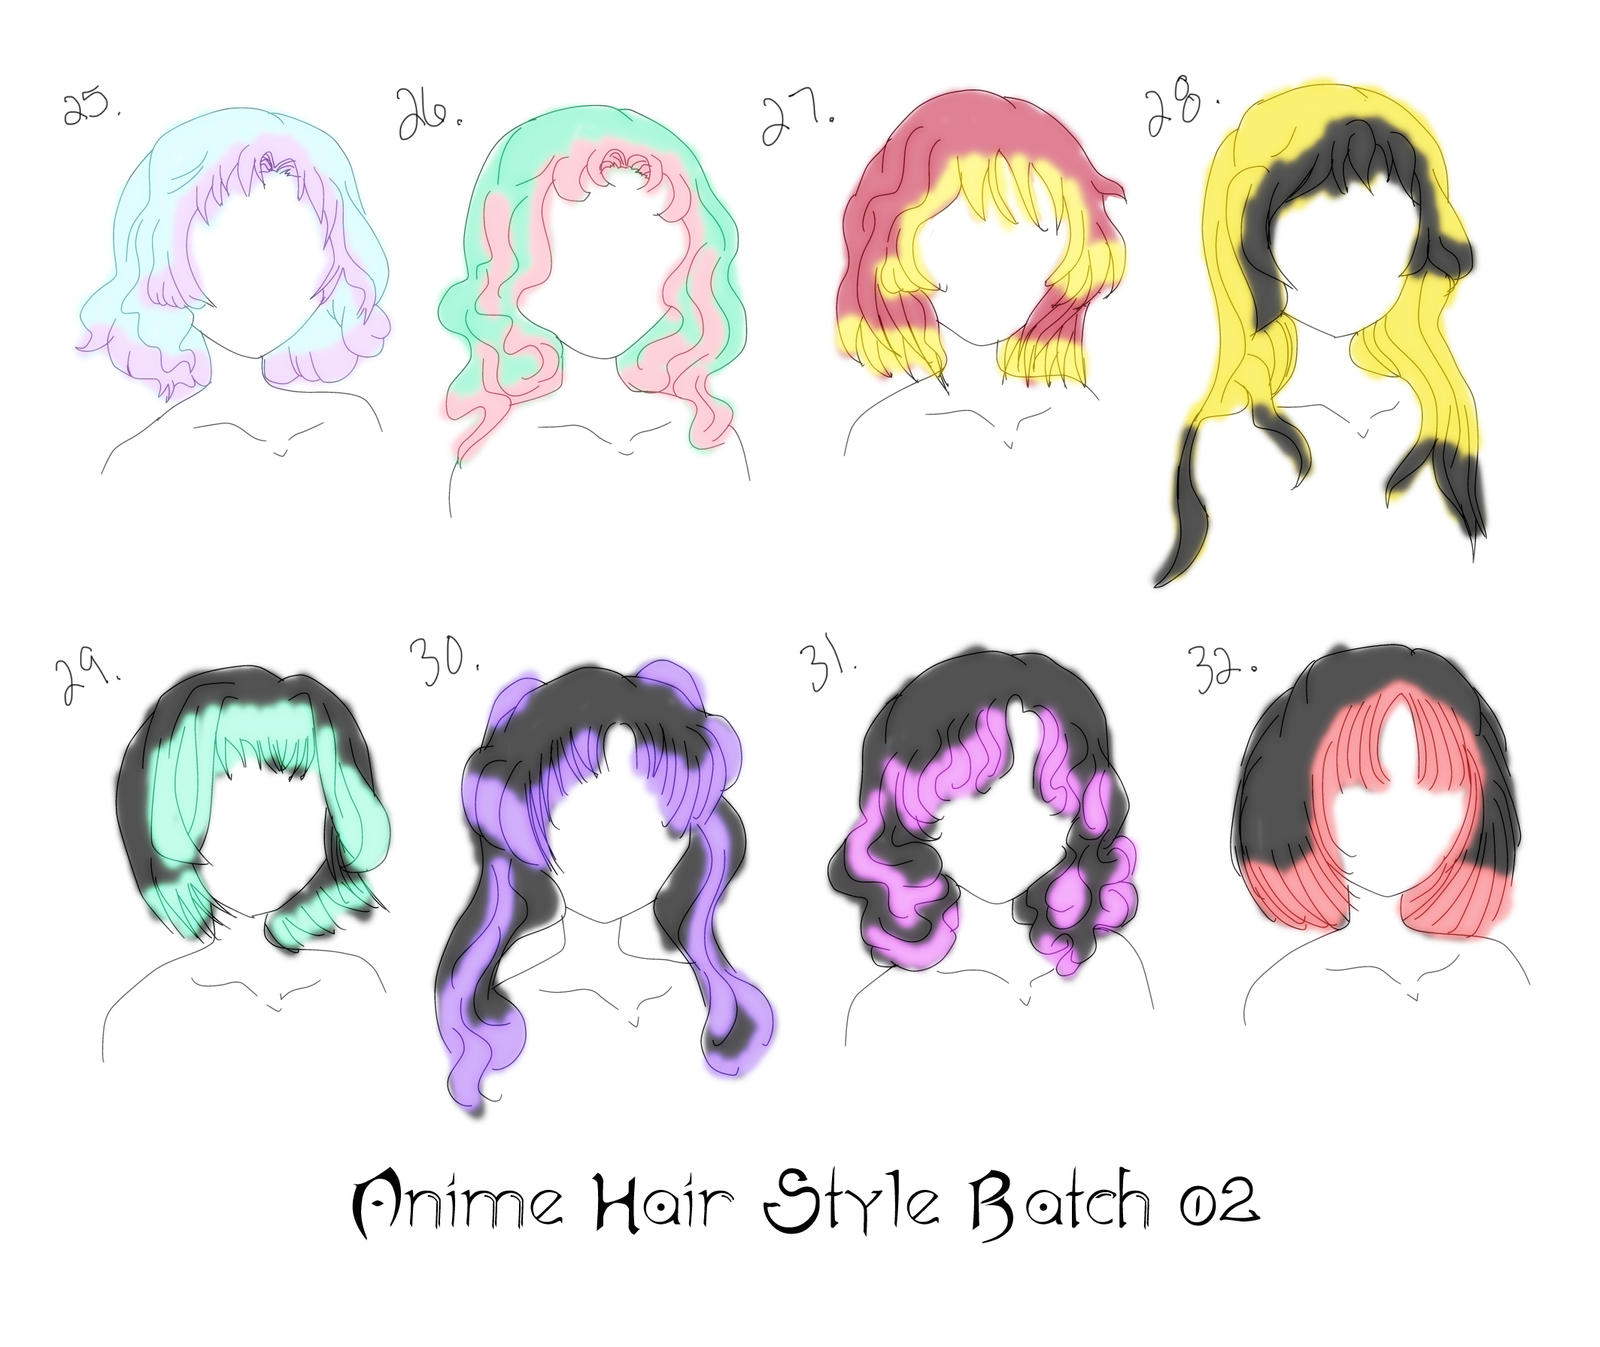 8 Anime Hair Styles By Inlovewithyaoi On Deviantart